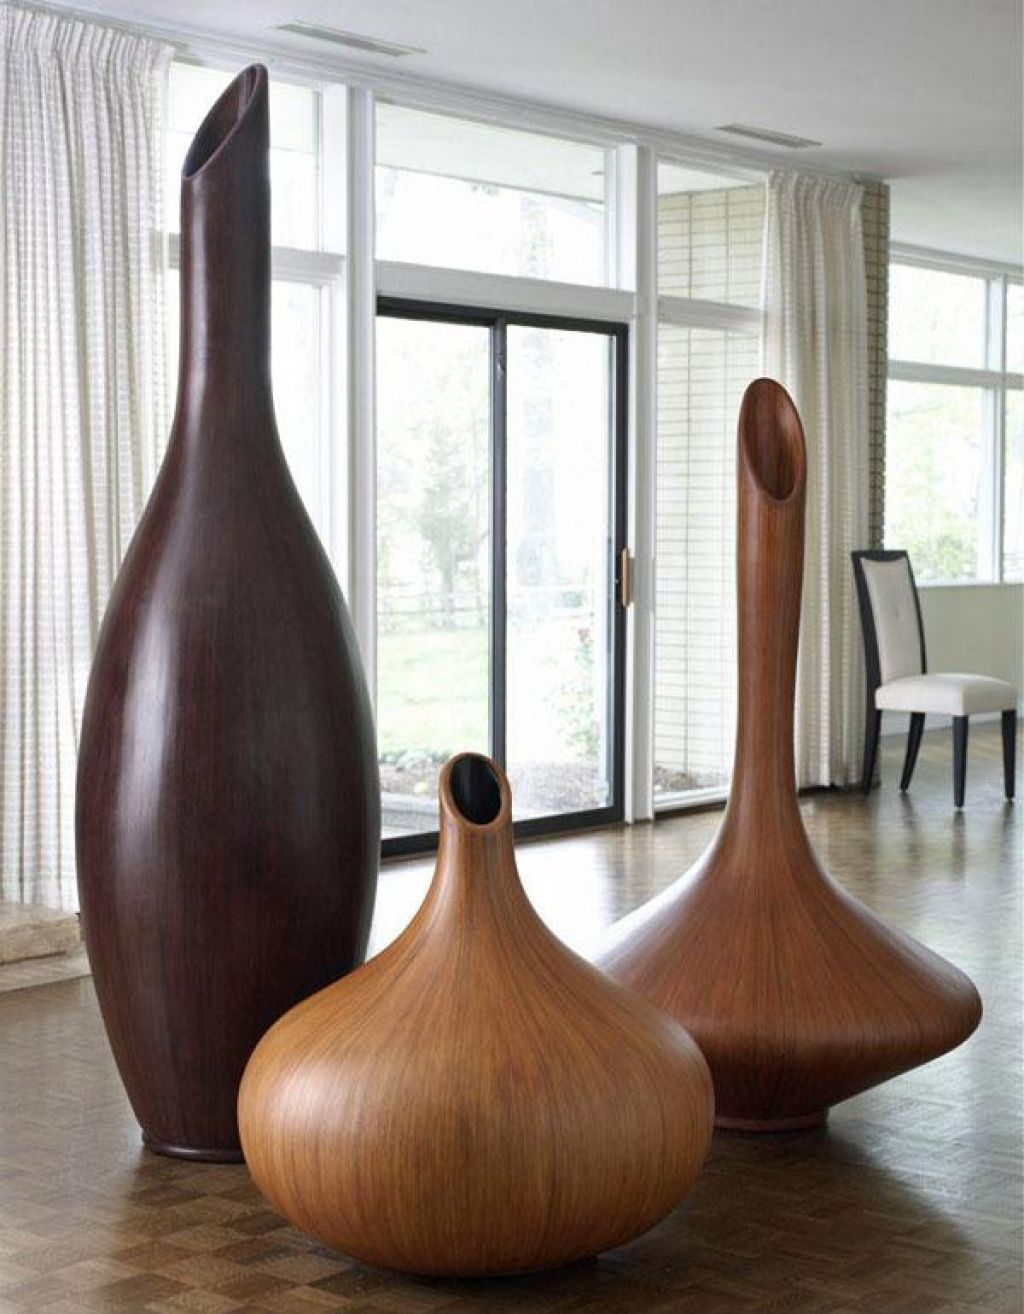 Tall Vases Home Decor Amazing Tall Decorative Floor Vases Breathtaking Living